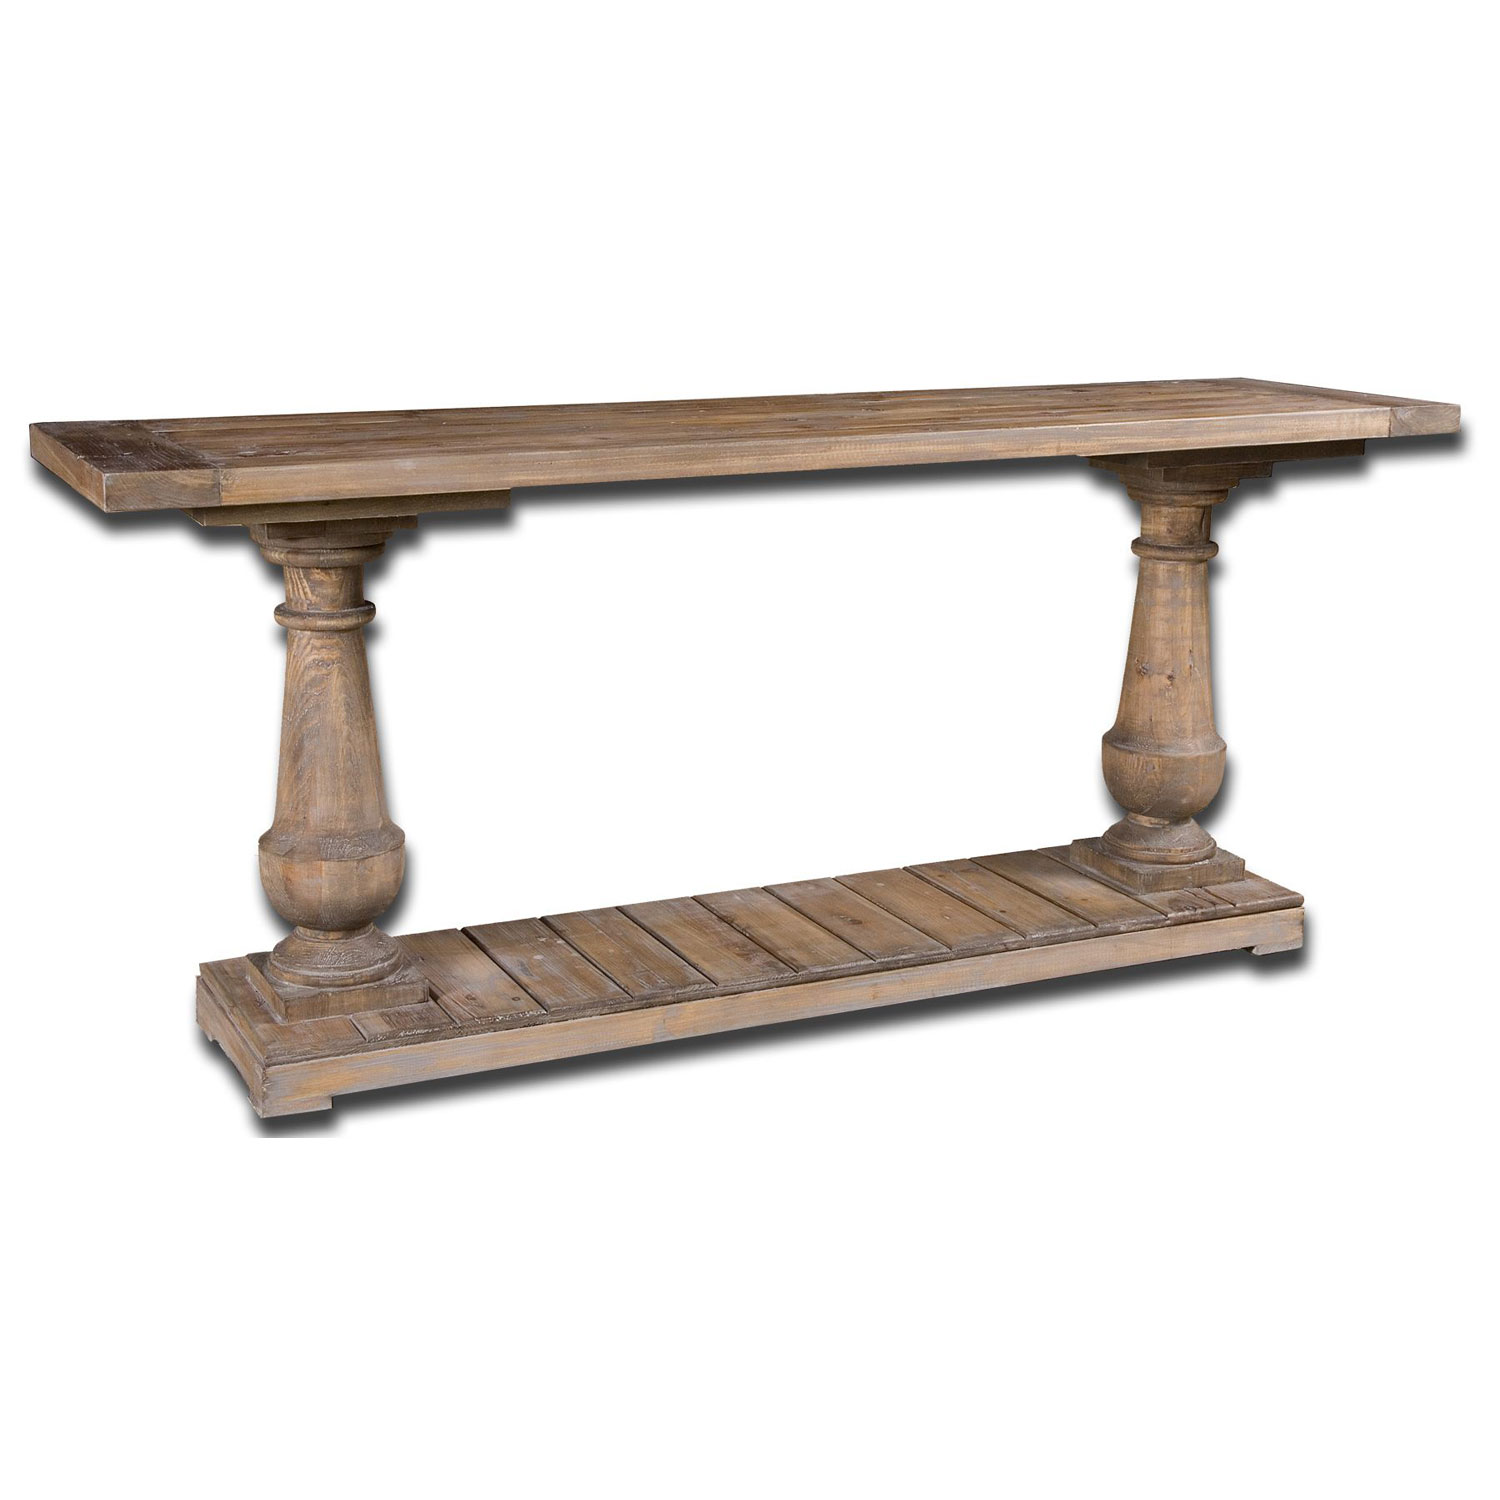 uttermost stratford fir wood console table bellacor rustic gray accent hover zoom west elm rocking chair sheesham dining room pieces threshold rugs prefinished solid hardwood